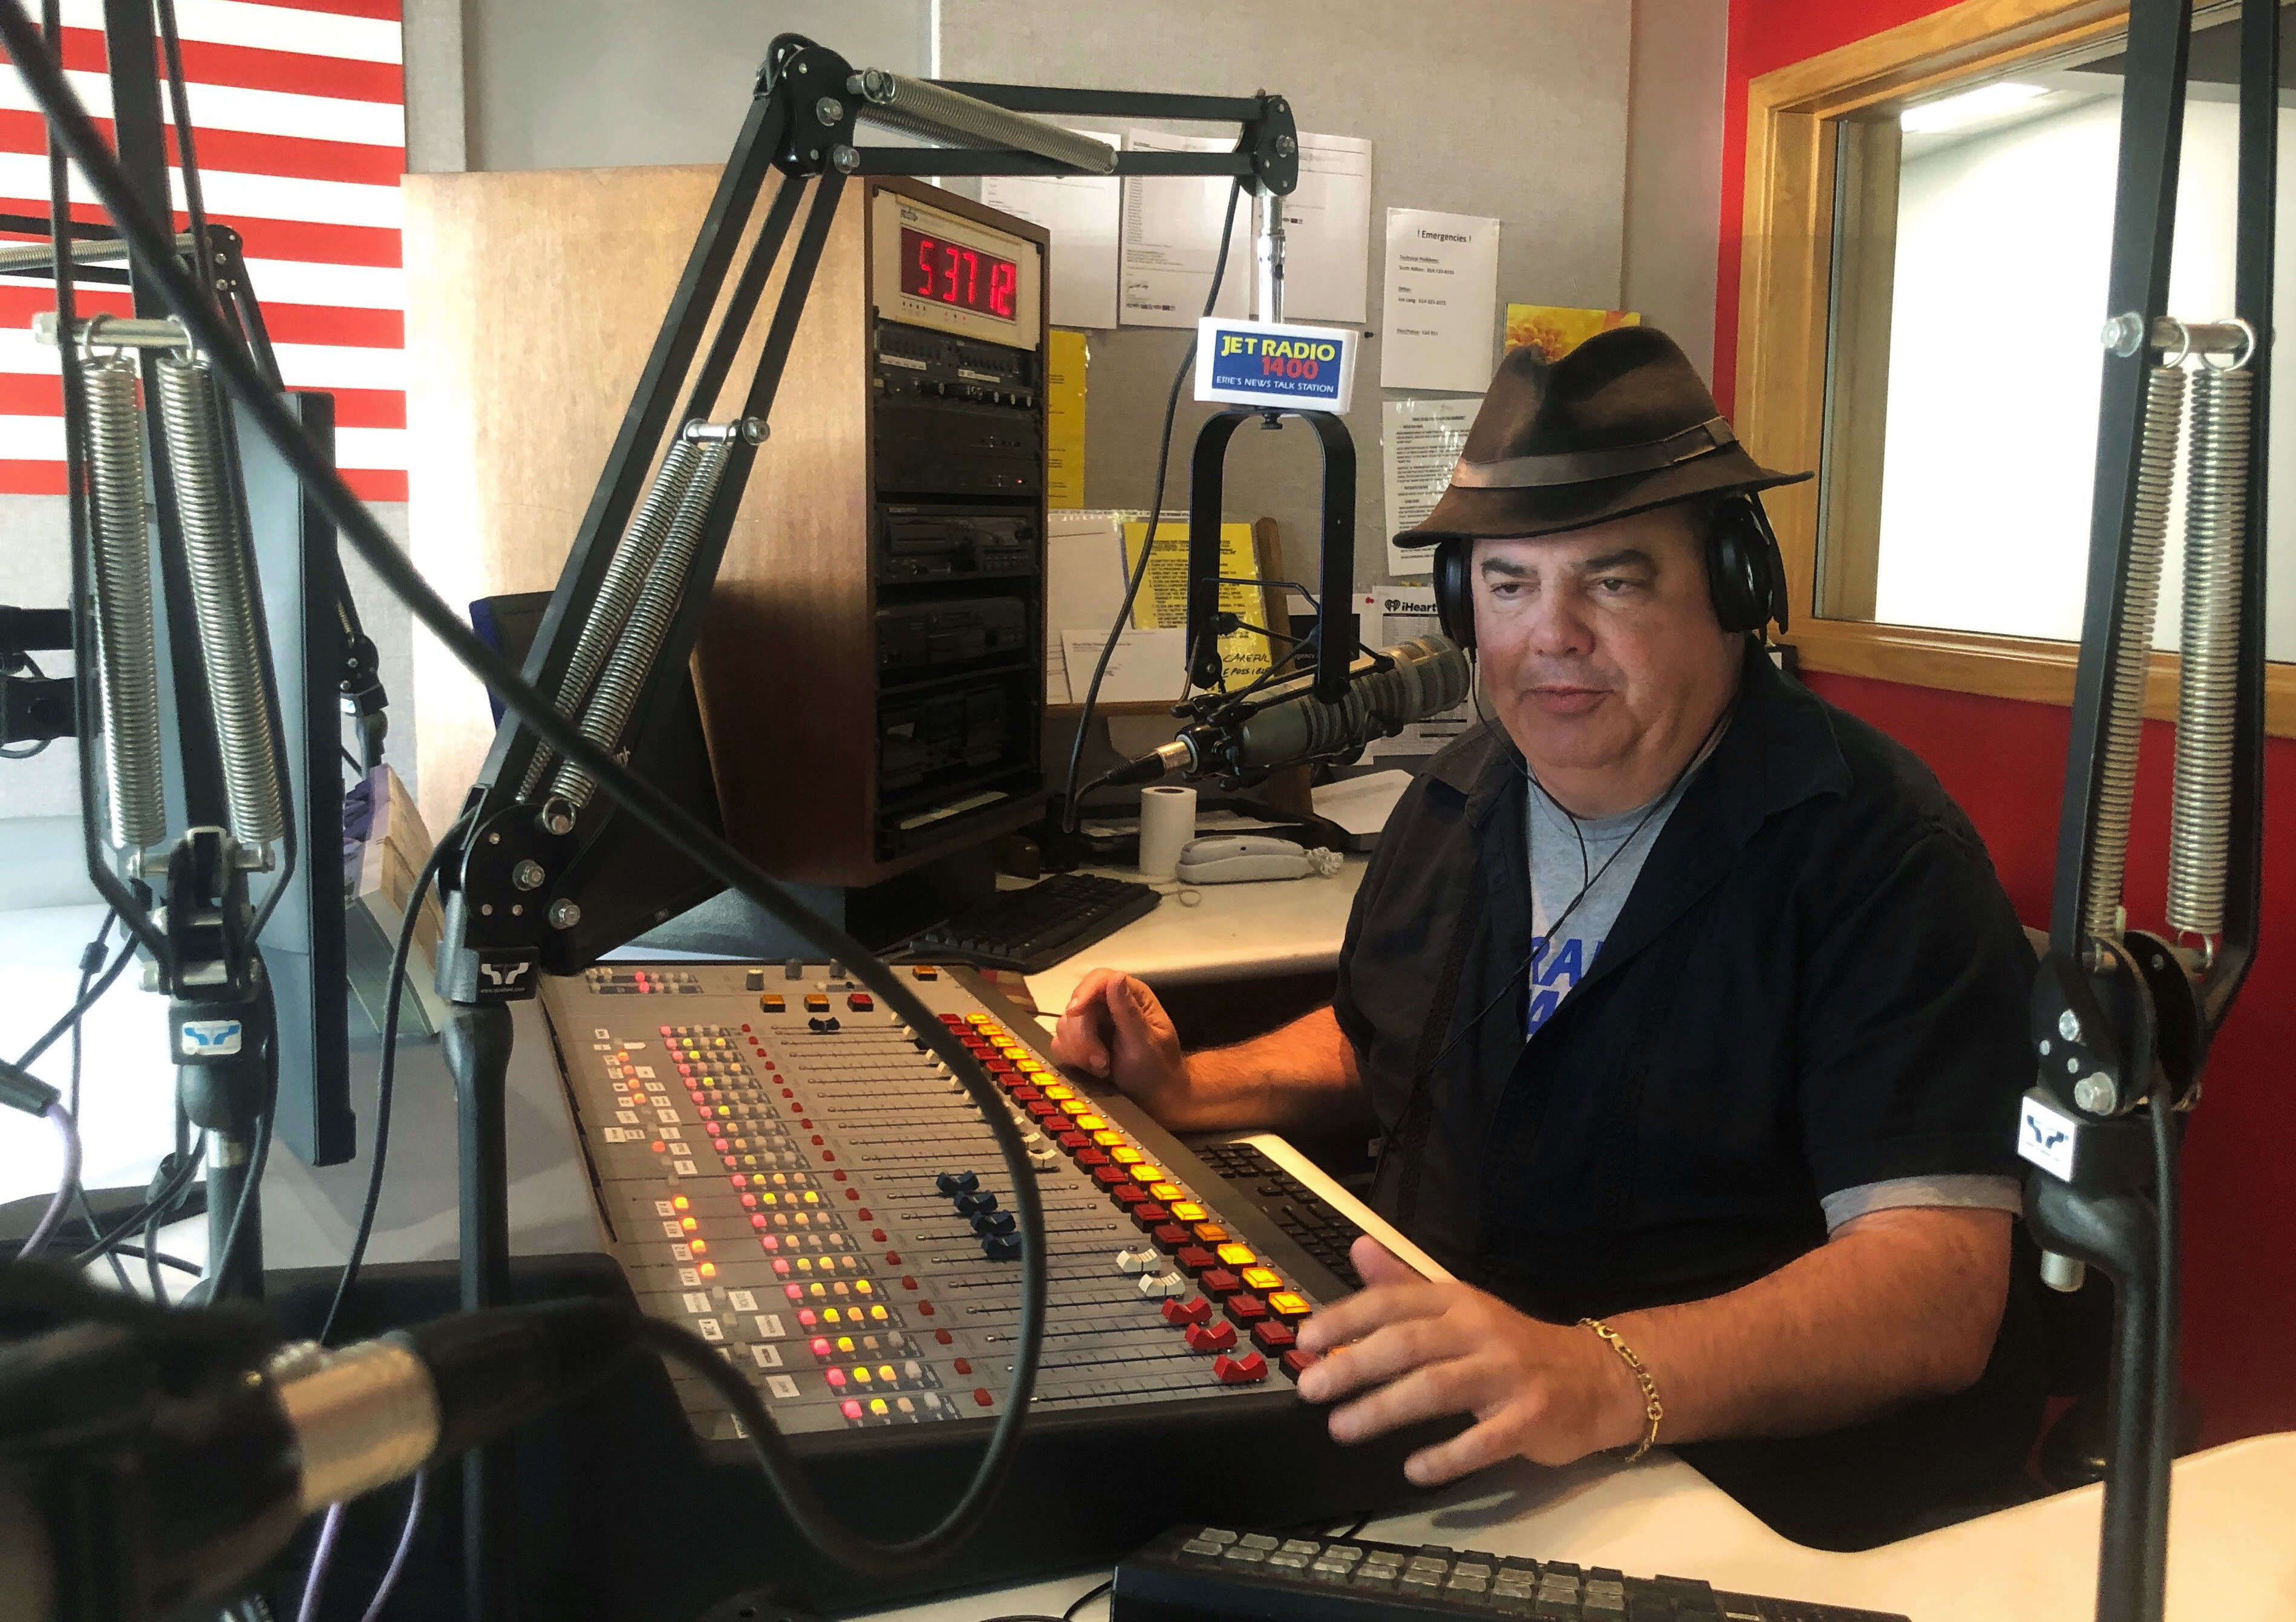 In this Friday, Aug. 2, 2019, photo, Scott Bremner, talk radio host, works in Erie, Pa. Months ago, Bremner had tried to establish if his listeners could agree on a fundamental question: what is racism? The answer, he realized, is no, we don't even agree on that. (AP Photo/Claire Galofaro)